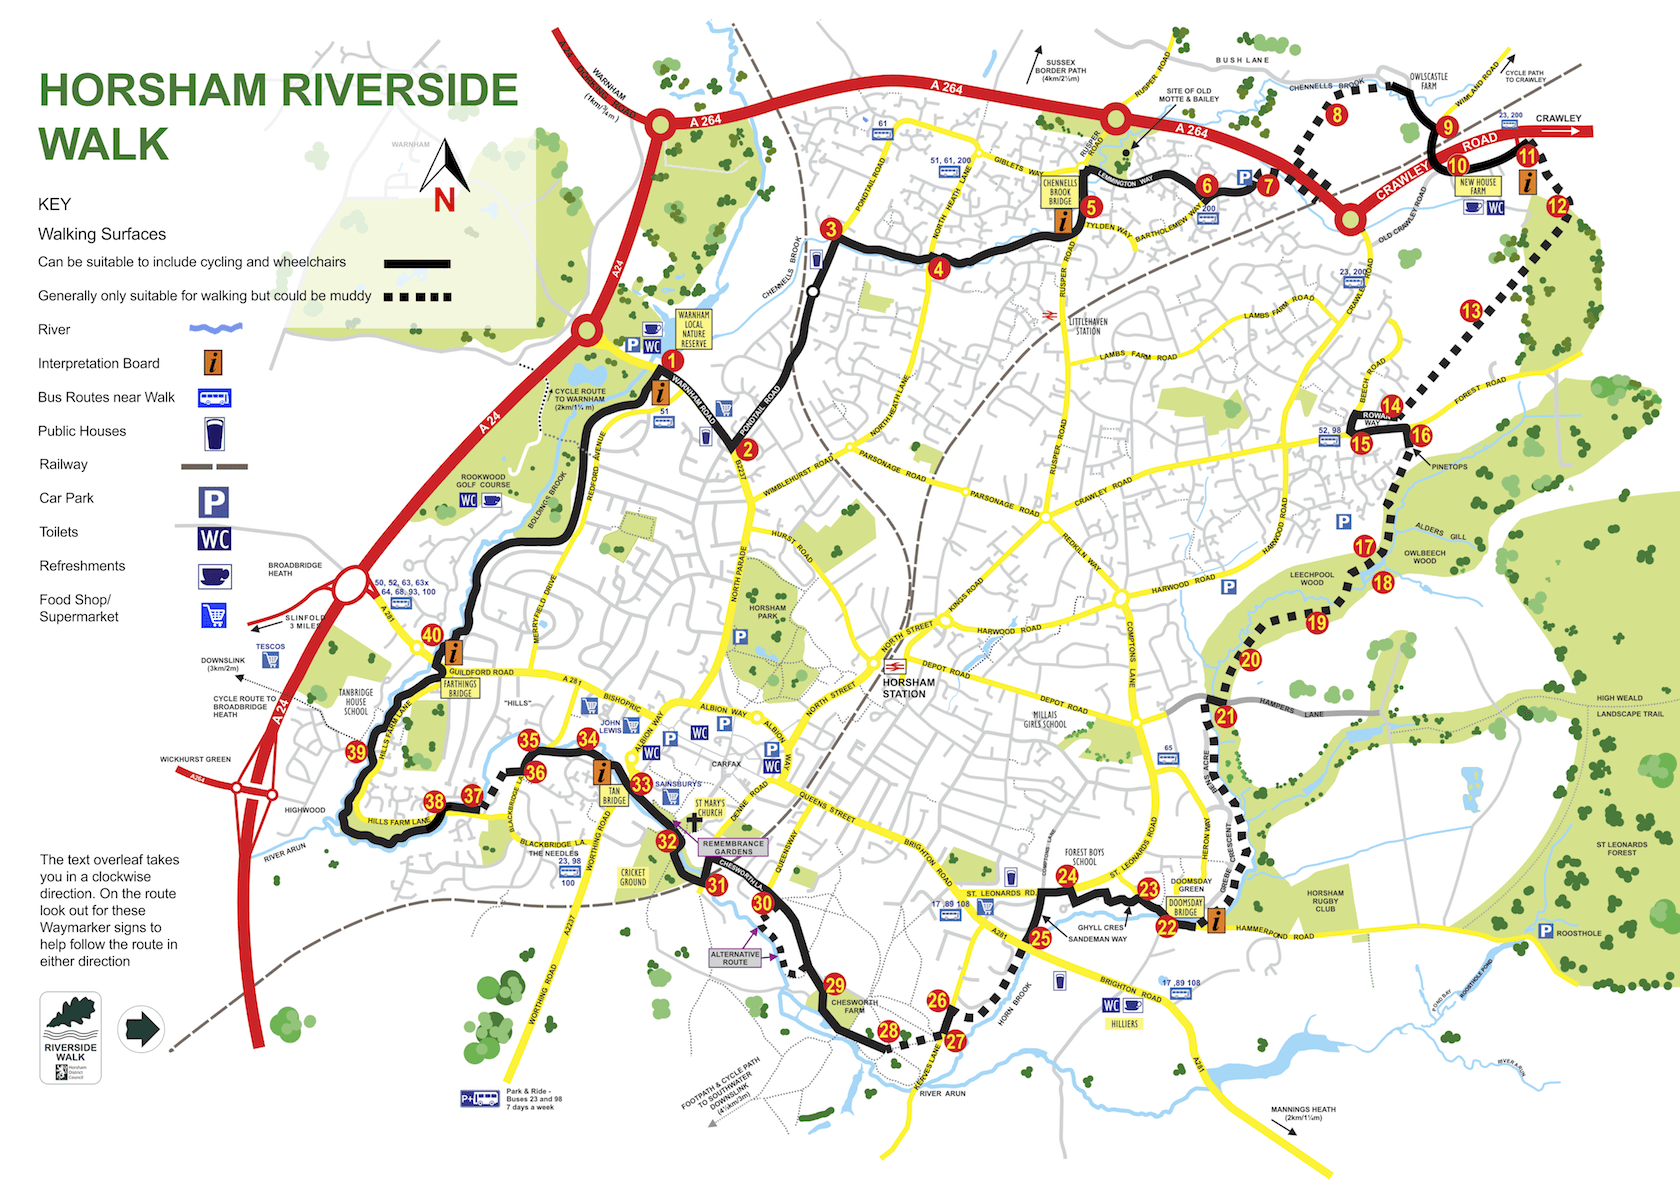 Horsham Riverside Walk Map 2018